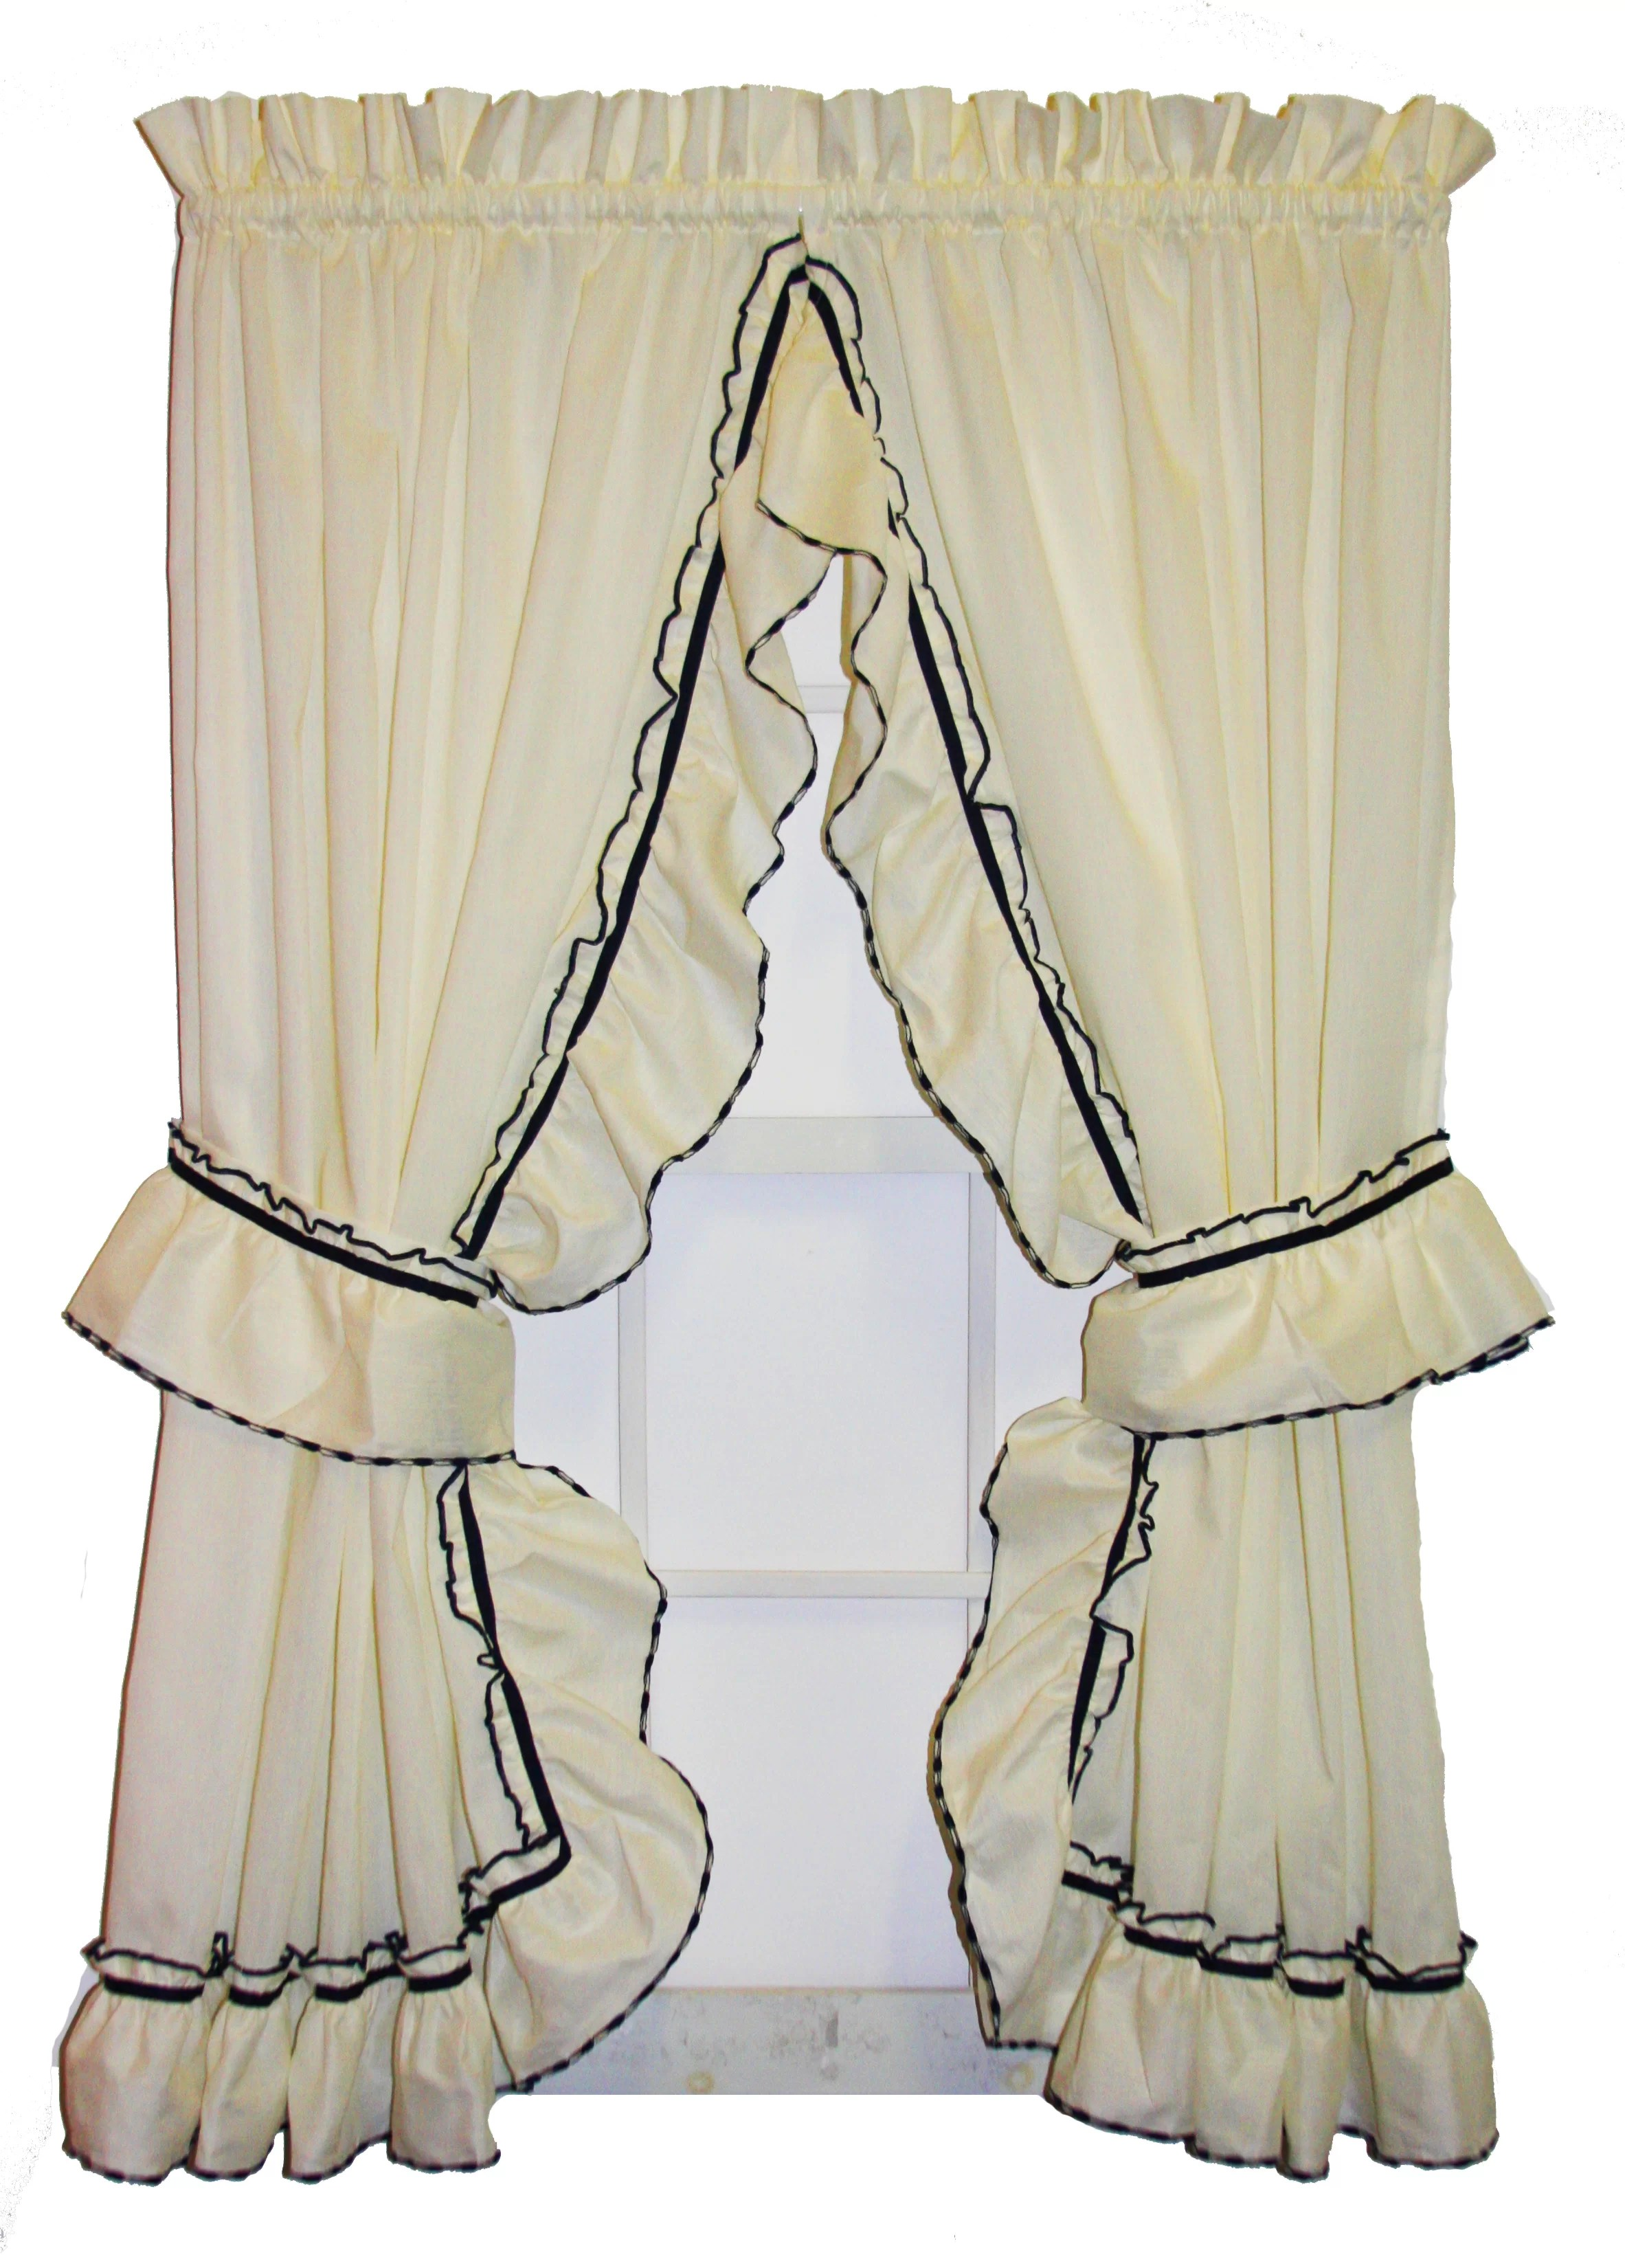 Ruffle Curtain Panel Hower Country Ruffled Priscilla Curtain Panels Pair